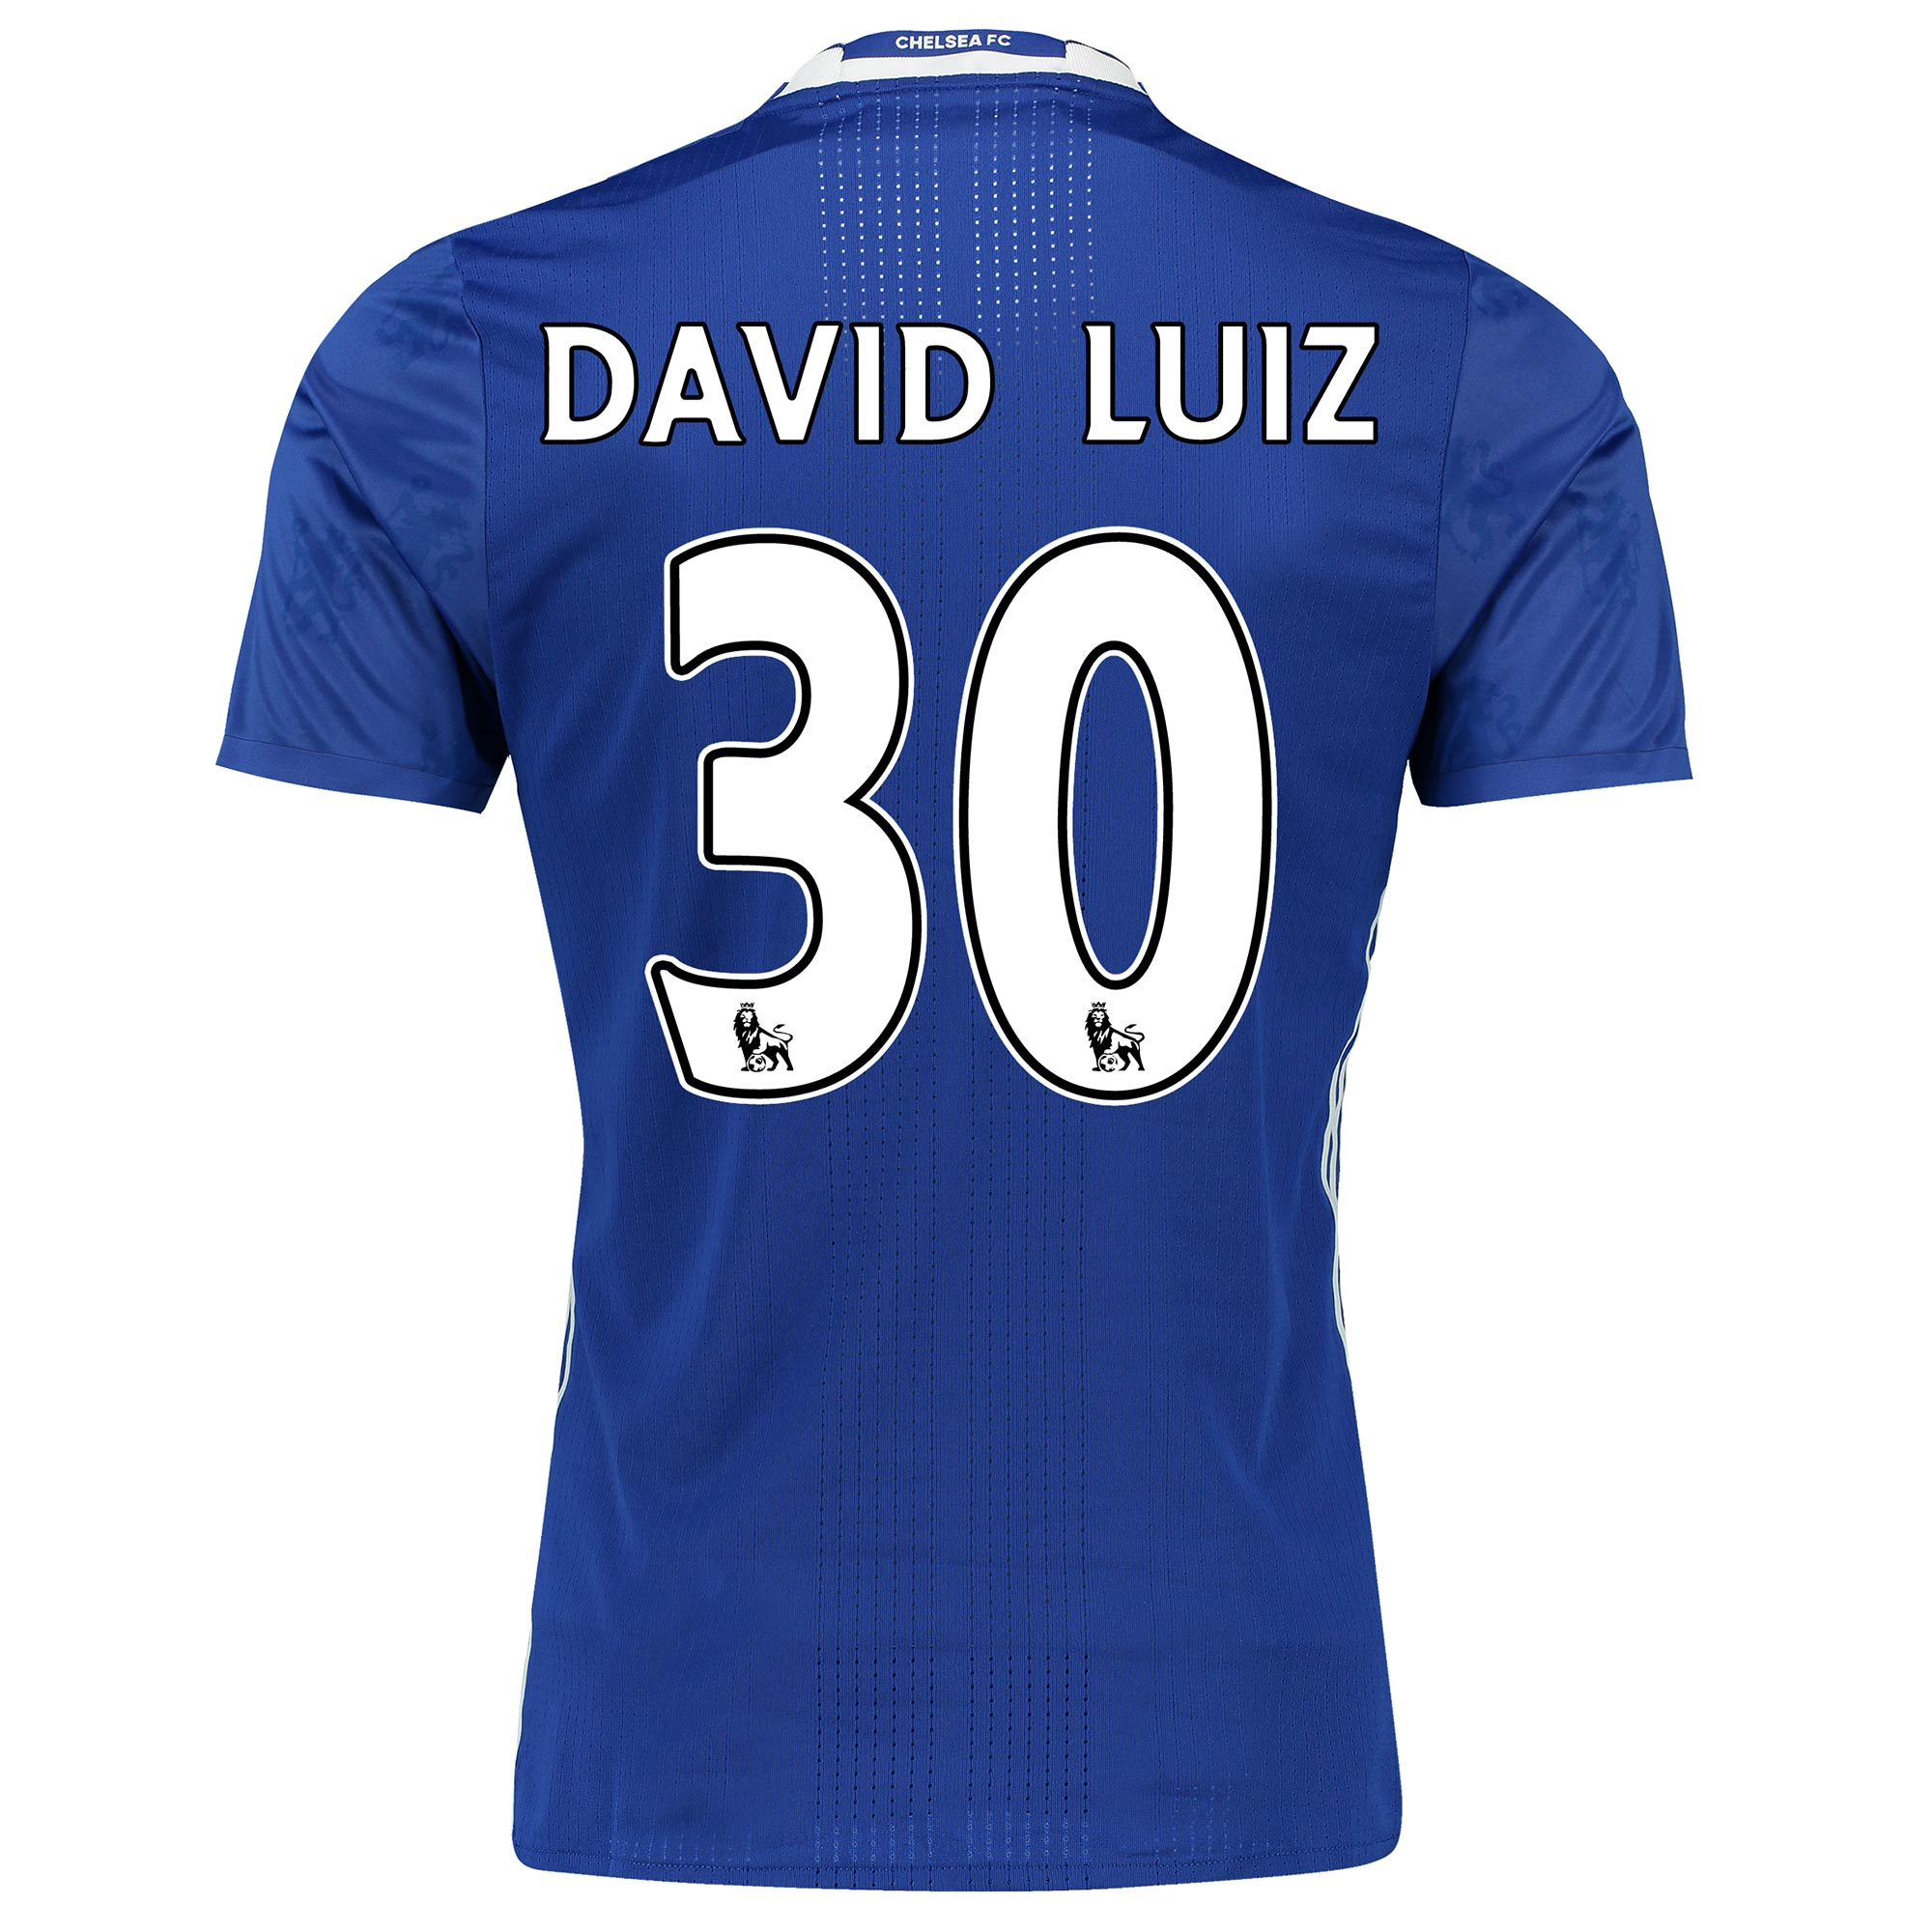 Chelsea Home adizero Shirt 2016-17   Experience 100% authenticity with the official Chelsea Home adizero Shirt 2016-17.   This authentic Chelsea 2016-17 adizero home shirt is identical to the cutting edge, athletic fit jersey worn by the Blues' first team in their Premier League fixtures at Stamford Bridge, with 100% polyester interlock composition providing enhanced ease of movement in comfort.   Made with advanced adizero fabric designed for top-level athletes, this high-end game jersey benefits from the latest in adidas matchwear technology, with its unrivalled texture and tactility providing the same accurate touch and feel enjoyed by players on English football's grandest stage.   With premium features including an engineered back panel for superior ventilation, heat transferred lightweight chest elements to eliminate unnecessary weight and a lightweight replication of the famous Chelsea Football Club crest, every fibre of this special jersey is designed with professional performance in mind, with the end experience unparalleled for pros and supporters alike.   Inspired by tradition and shaped by legacy, the latest interpretation of the Chelsea colours restores a classic Stamford Bridge image, with its vintage v-collar drawing allusion to Lions sides of yesteryear.   With the Chelsea crest's central lion motif forming the basis of a unique, all-over pattern print, the jersey's adidas Three Stripe branding is meanwhile featured in a contemporary side placement, completing a winning mix of old and new ready for the Blues' renewed title challenge.   Benefits:   Authentic athletic fit jersey Advanced adizero technology Highly-breathable fabric Breathable mesh linings Mesh ventilation inserts Heat transferred chest Engineered back panel Lightweight club crest V-collar and short sleeves All-over lion print design 3 Stripe tape elements 100% polyester interlock with David Luiz 30 printing